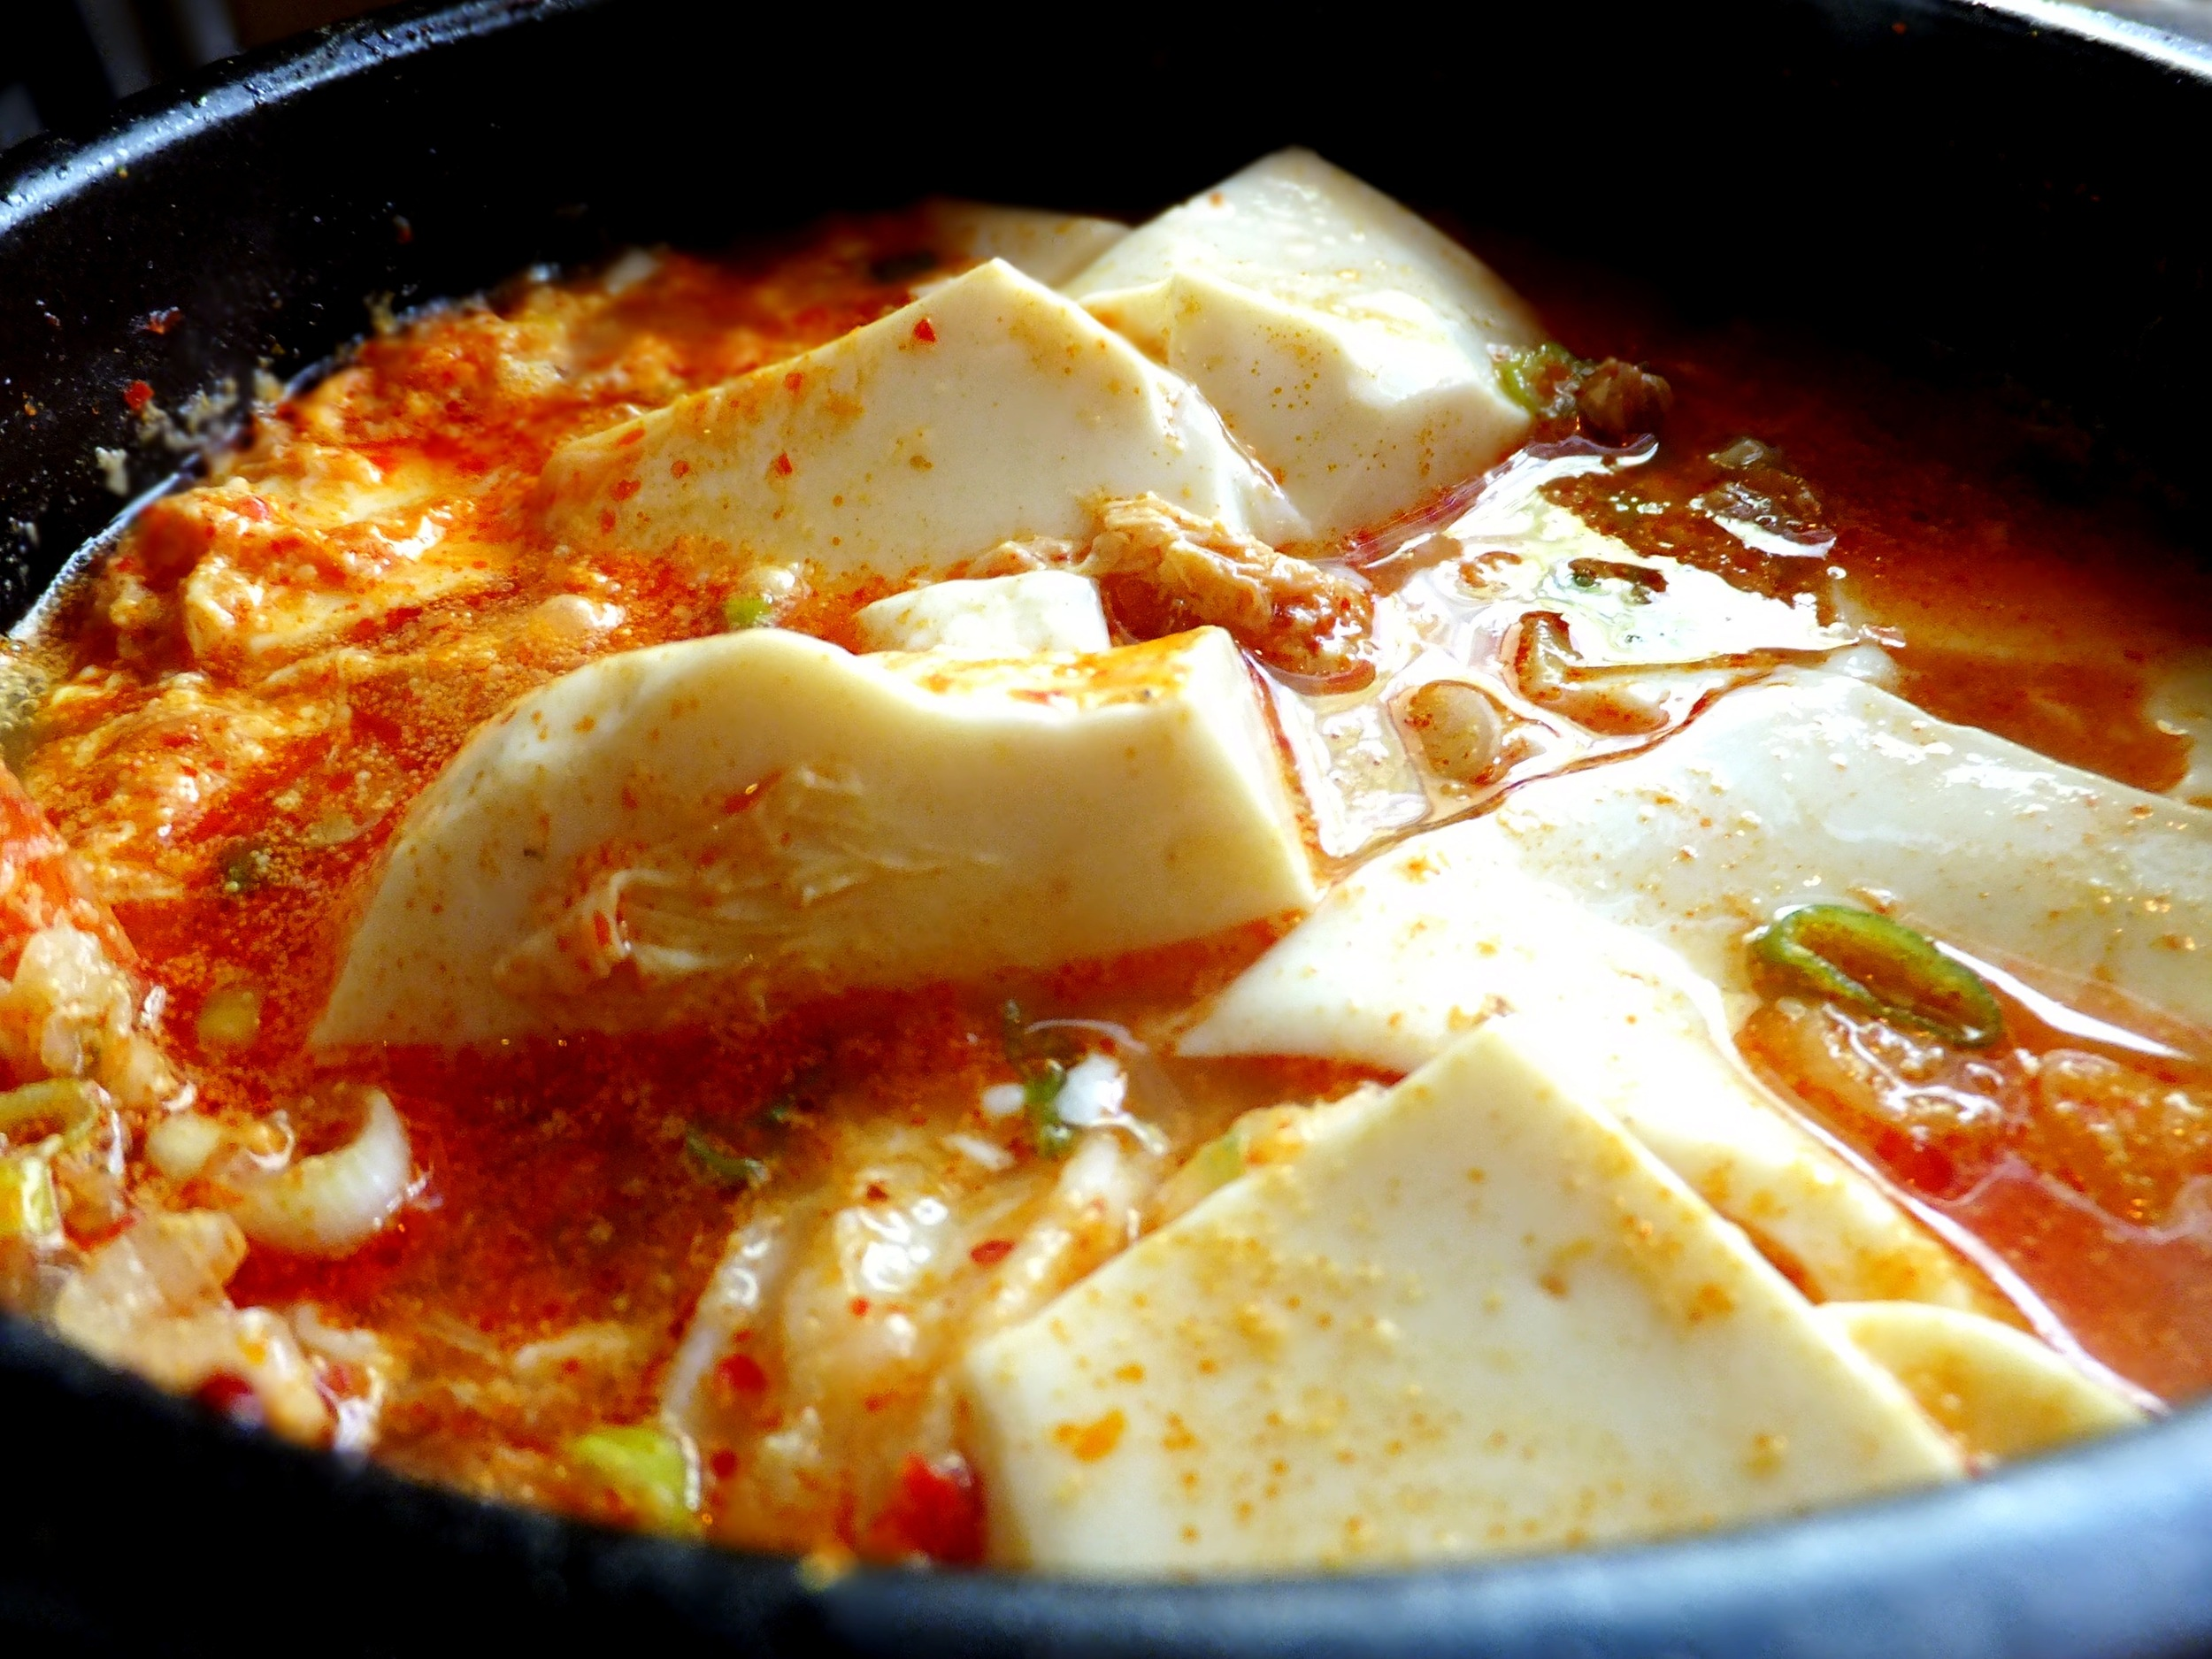 Figure 7. Spicy tofu hotpot